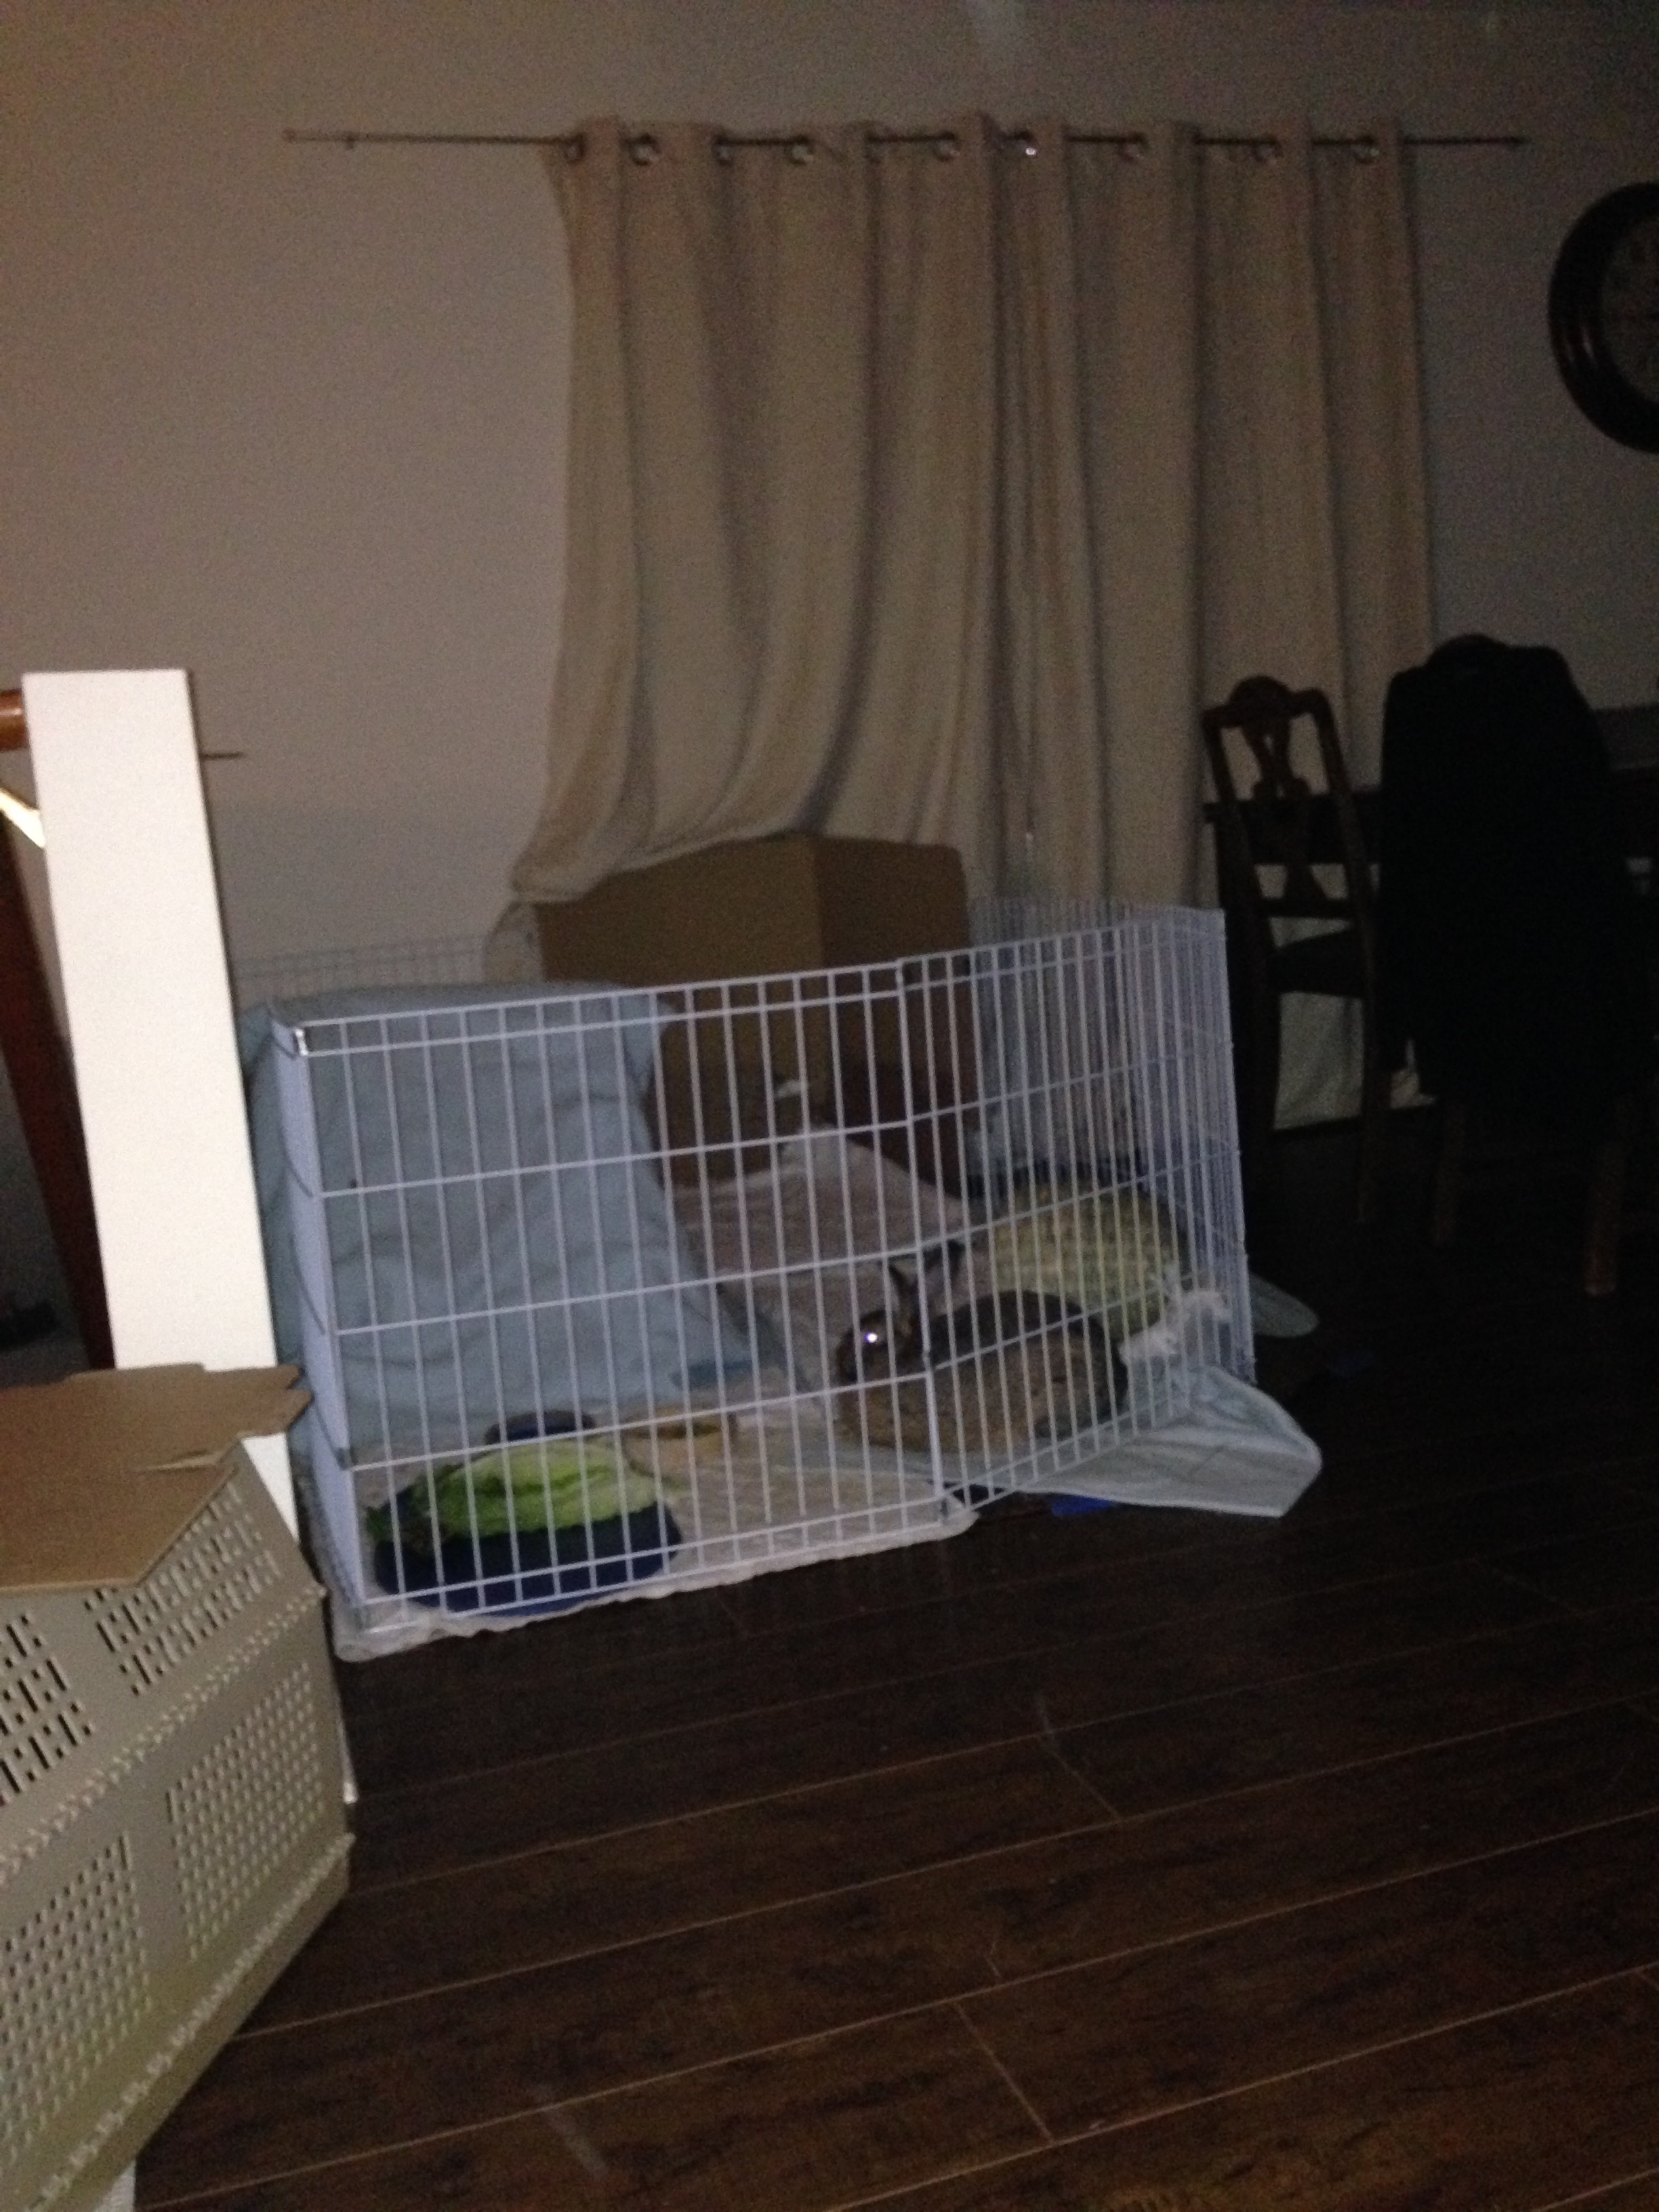 A pen is best for the first month. This helps a bunny know his area and develop good litter box habits. There is a plastic mat for his water bowl and lettuce. A small bowl for some pellets, and cardboard to play with and chew. For a big bunny, you will still want to let him/her explore every night for exercise.